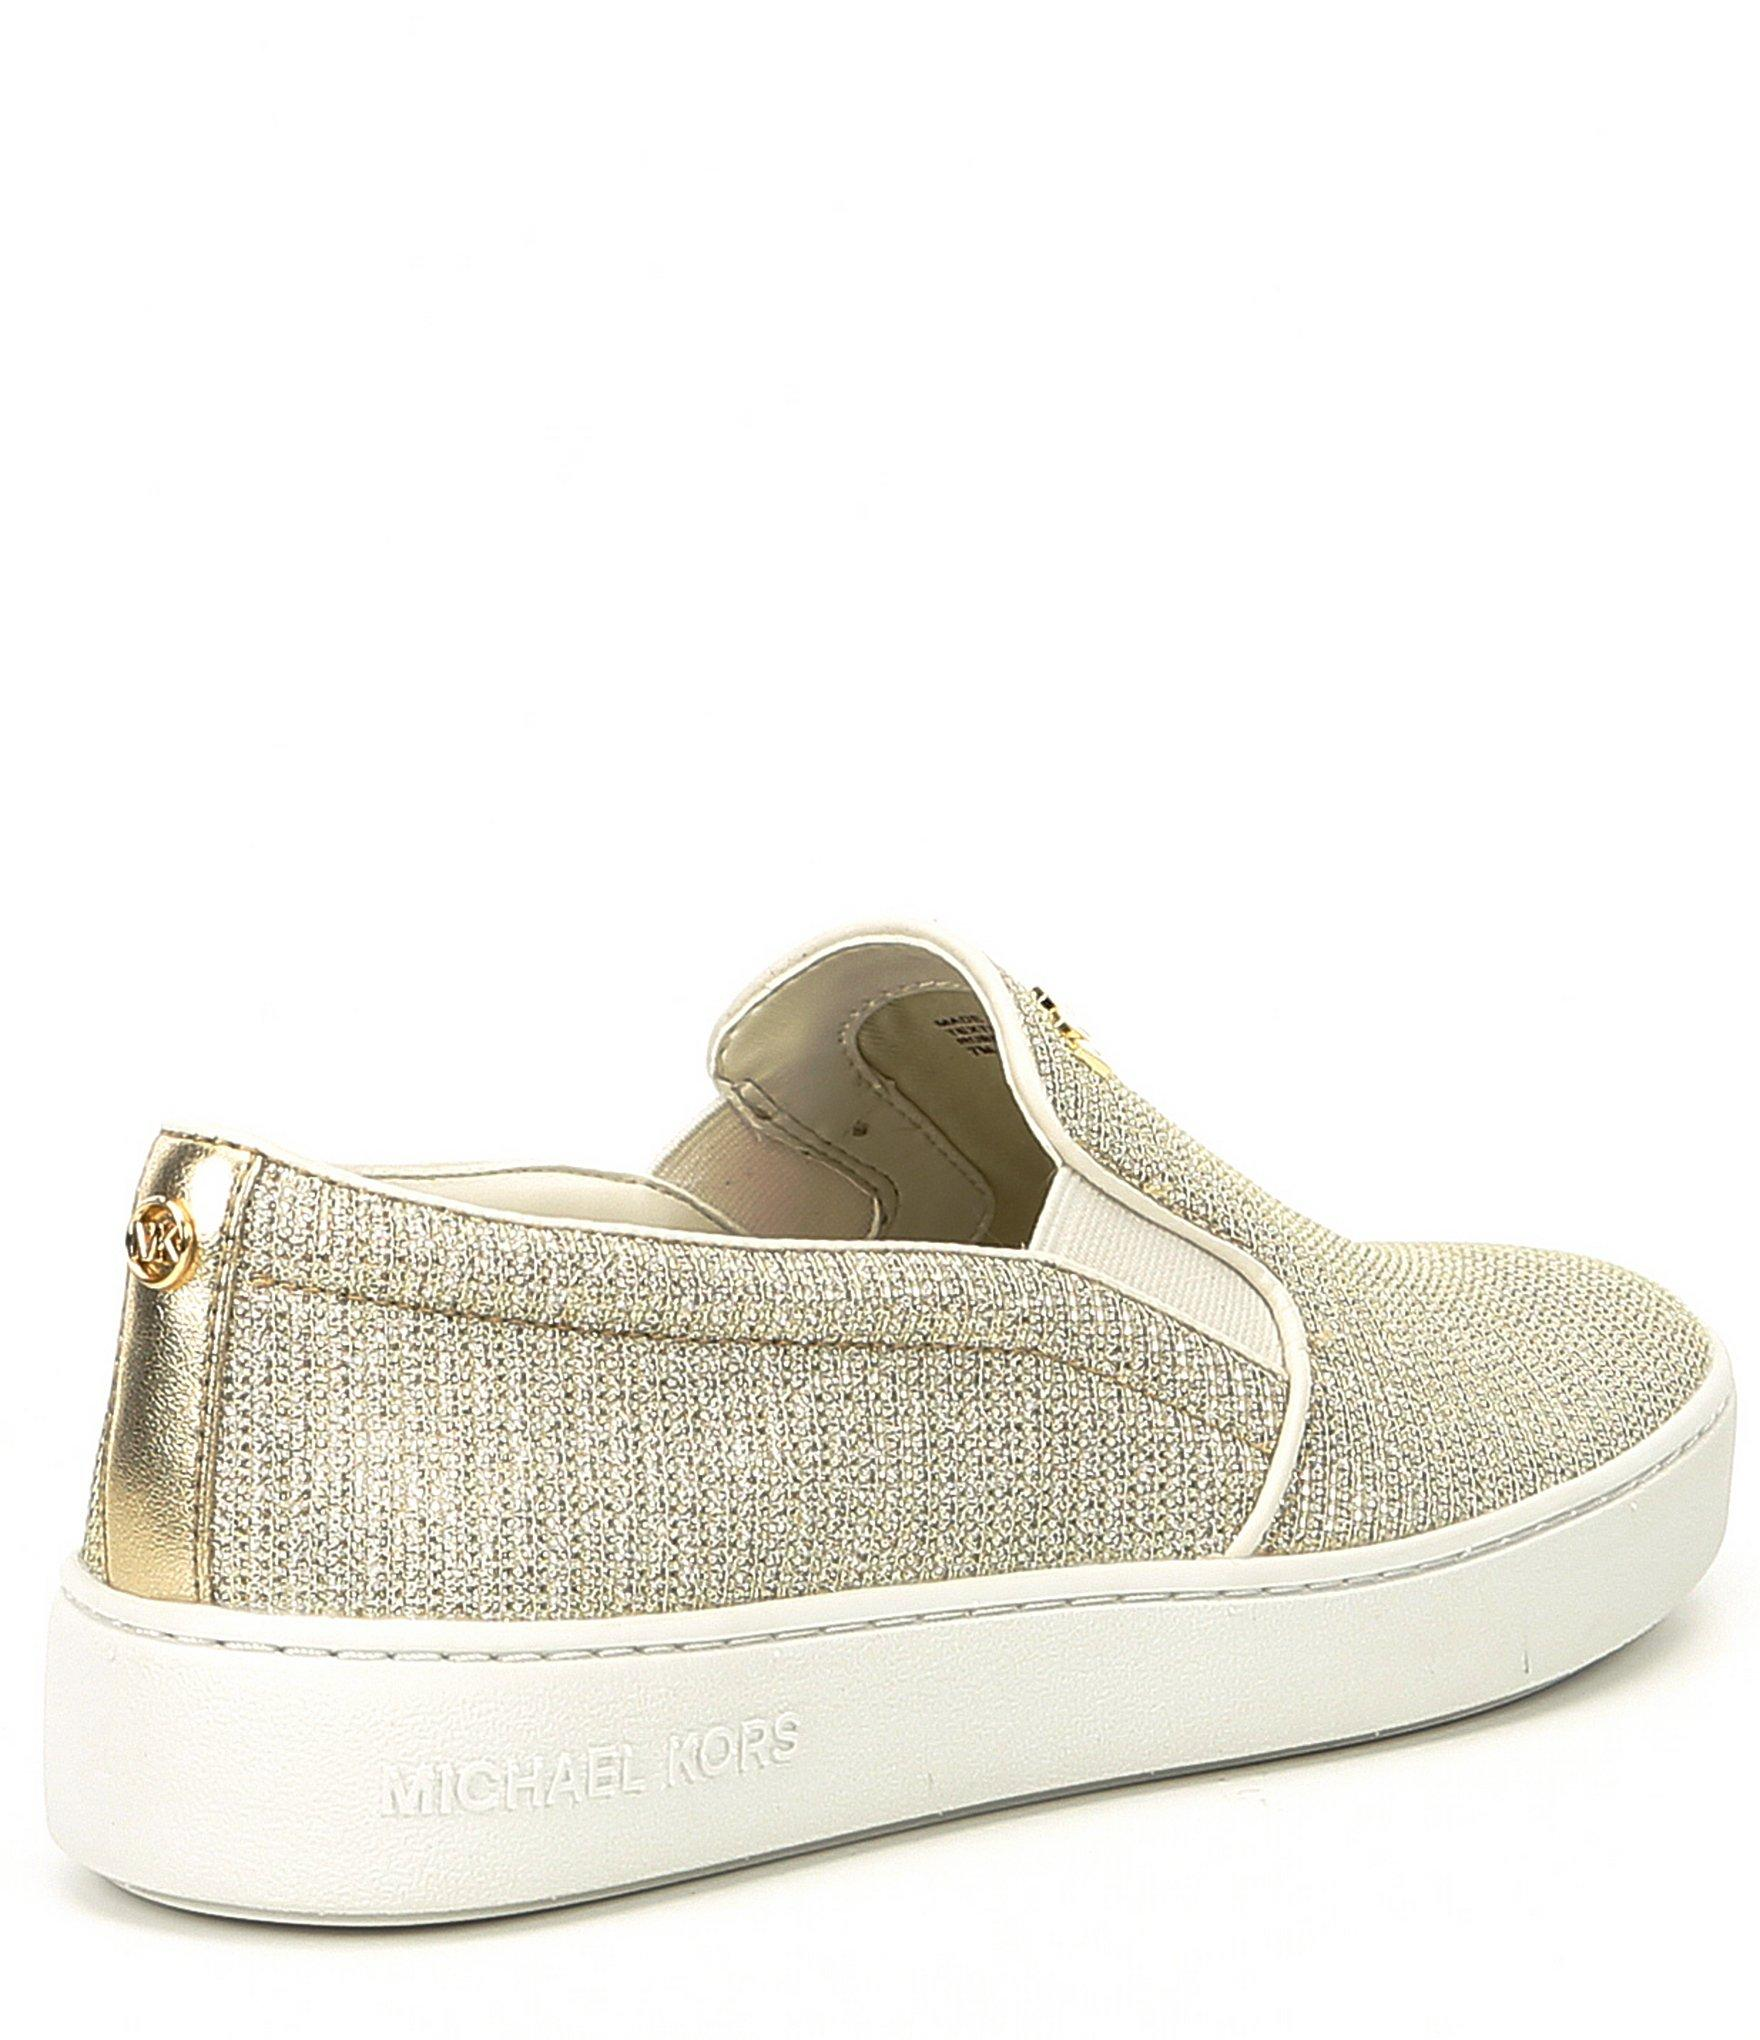 69006aee91c8 MICHAEL Michael Kors - White Keaton Glitter Fabric Slip On Sneakers - Lyst.  View fullscreen